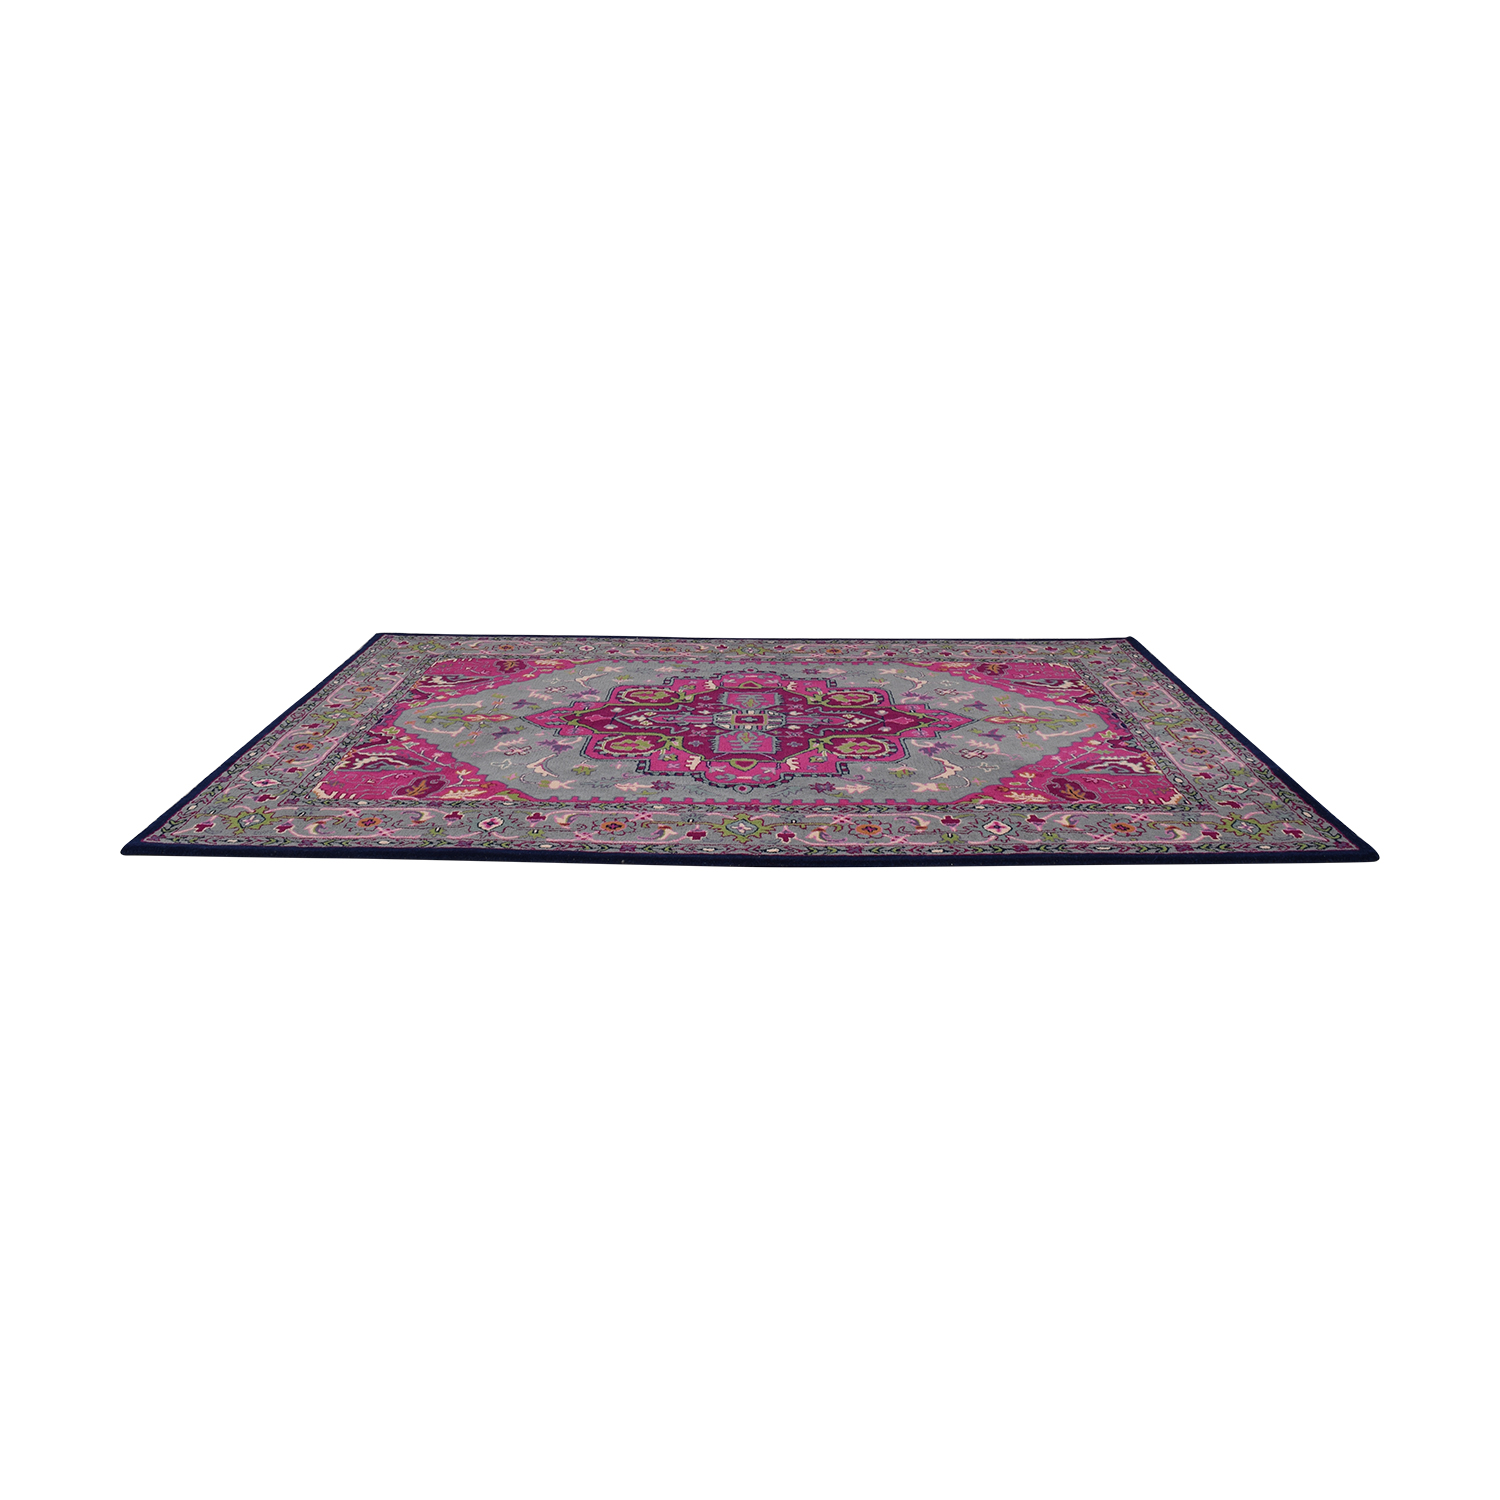 buy Safavieh Pink Rug Safavieh Decor